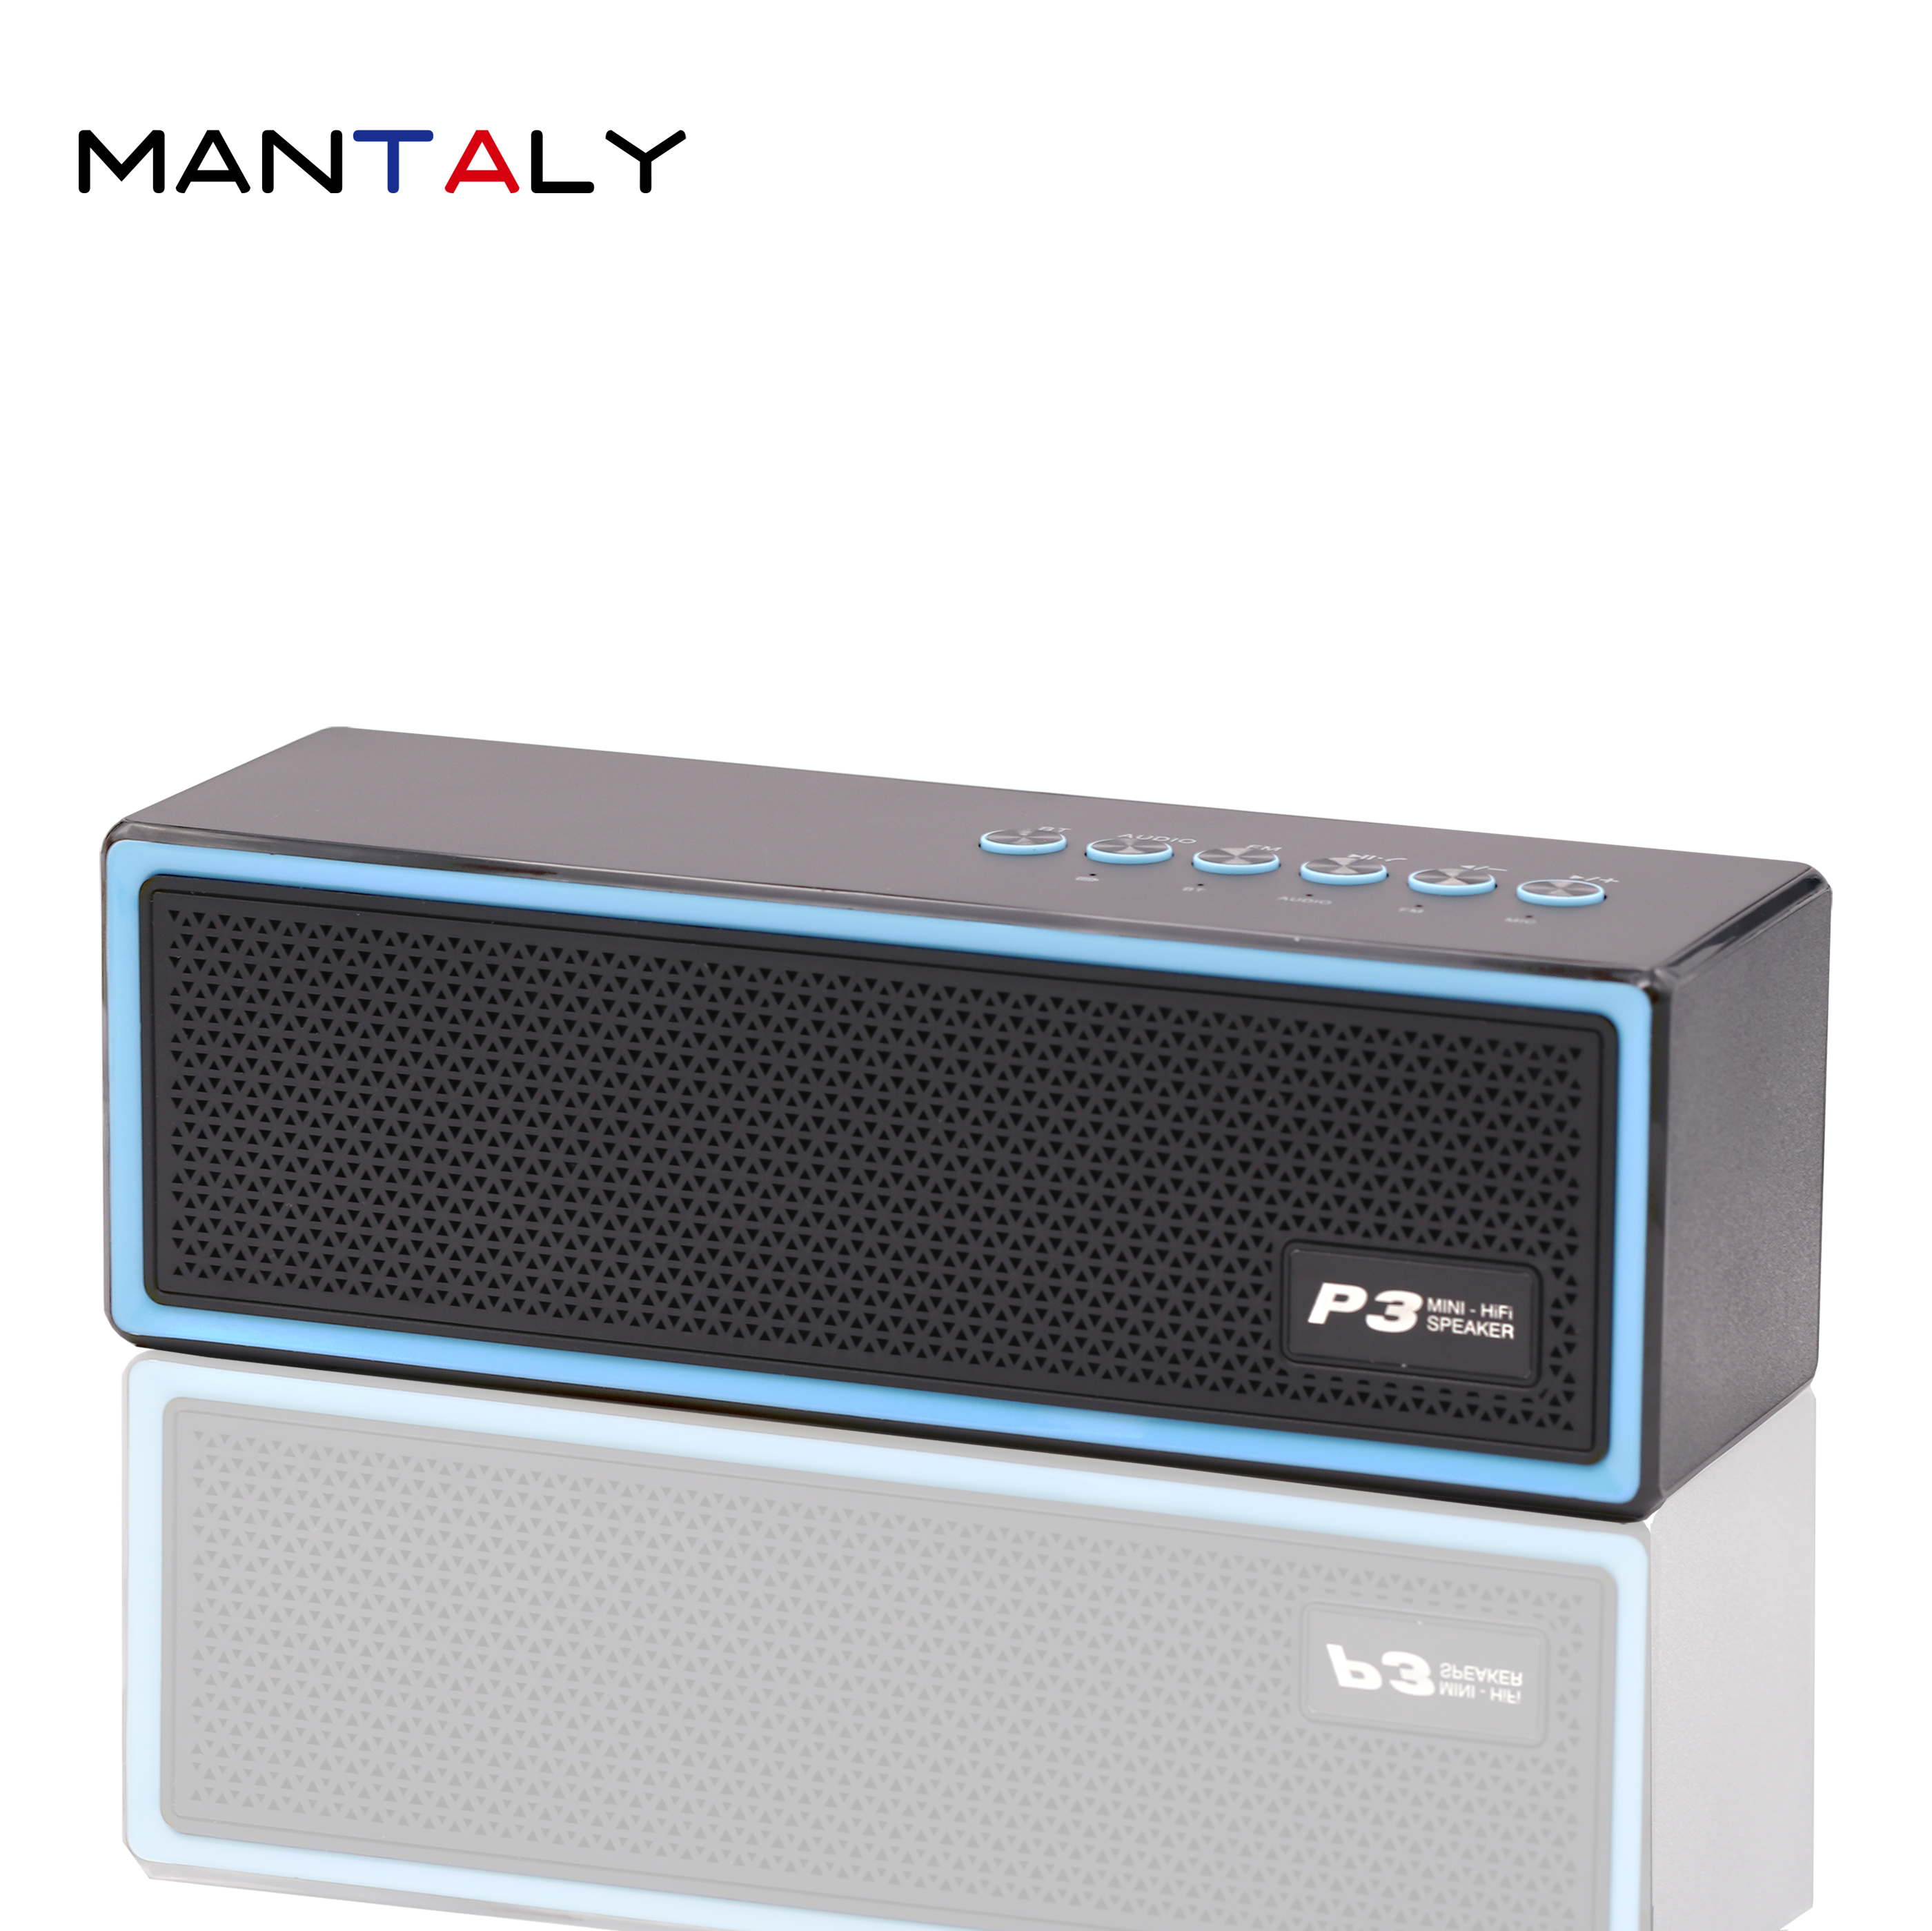 P3 mini wireless bluetooth speaker enceinte portable parlante soundbar spotify premium retro computer pc boombox blue tooth usb